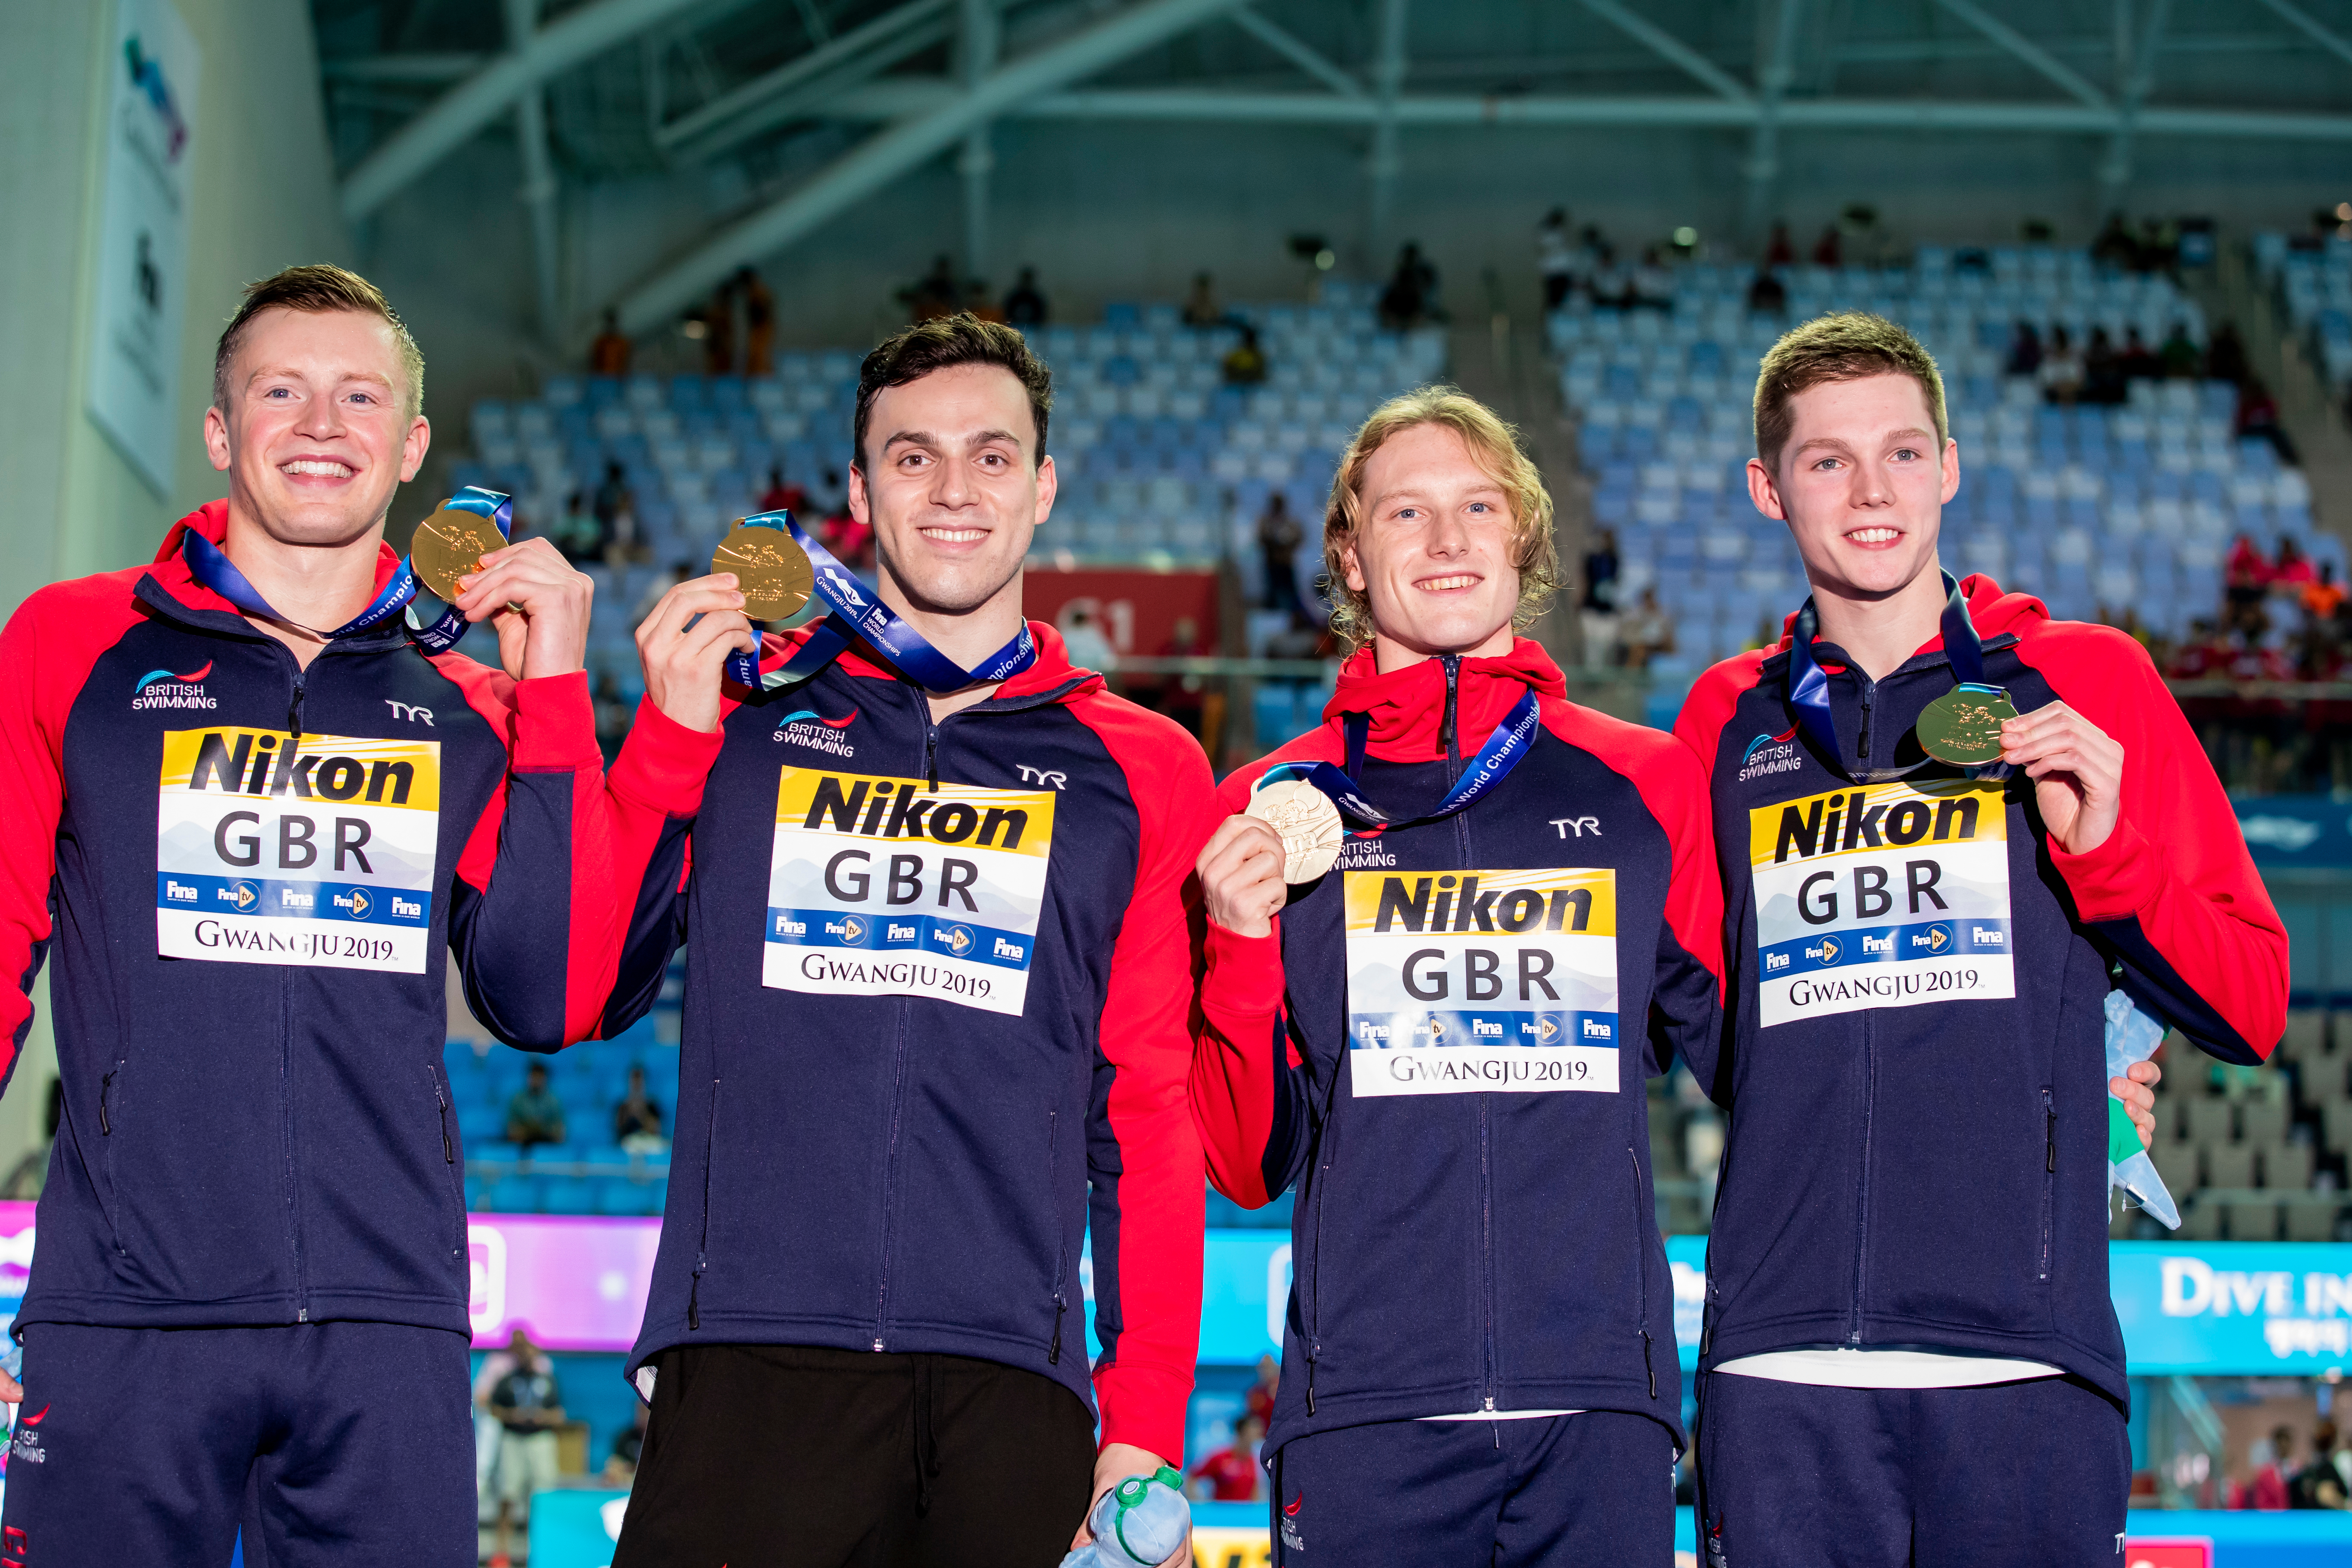 world medley gold